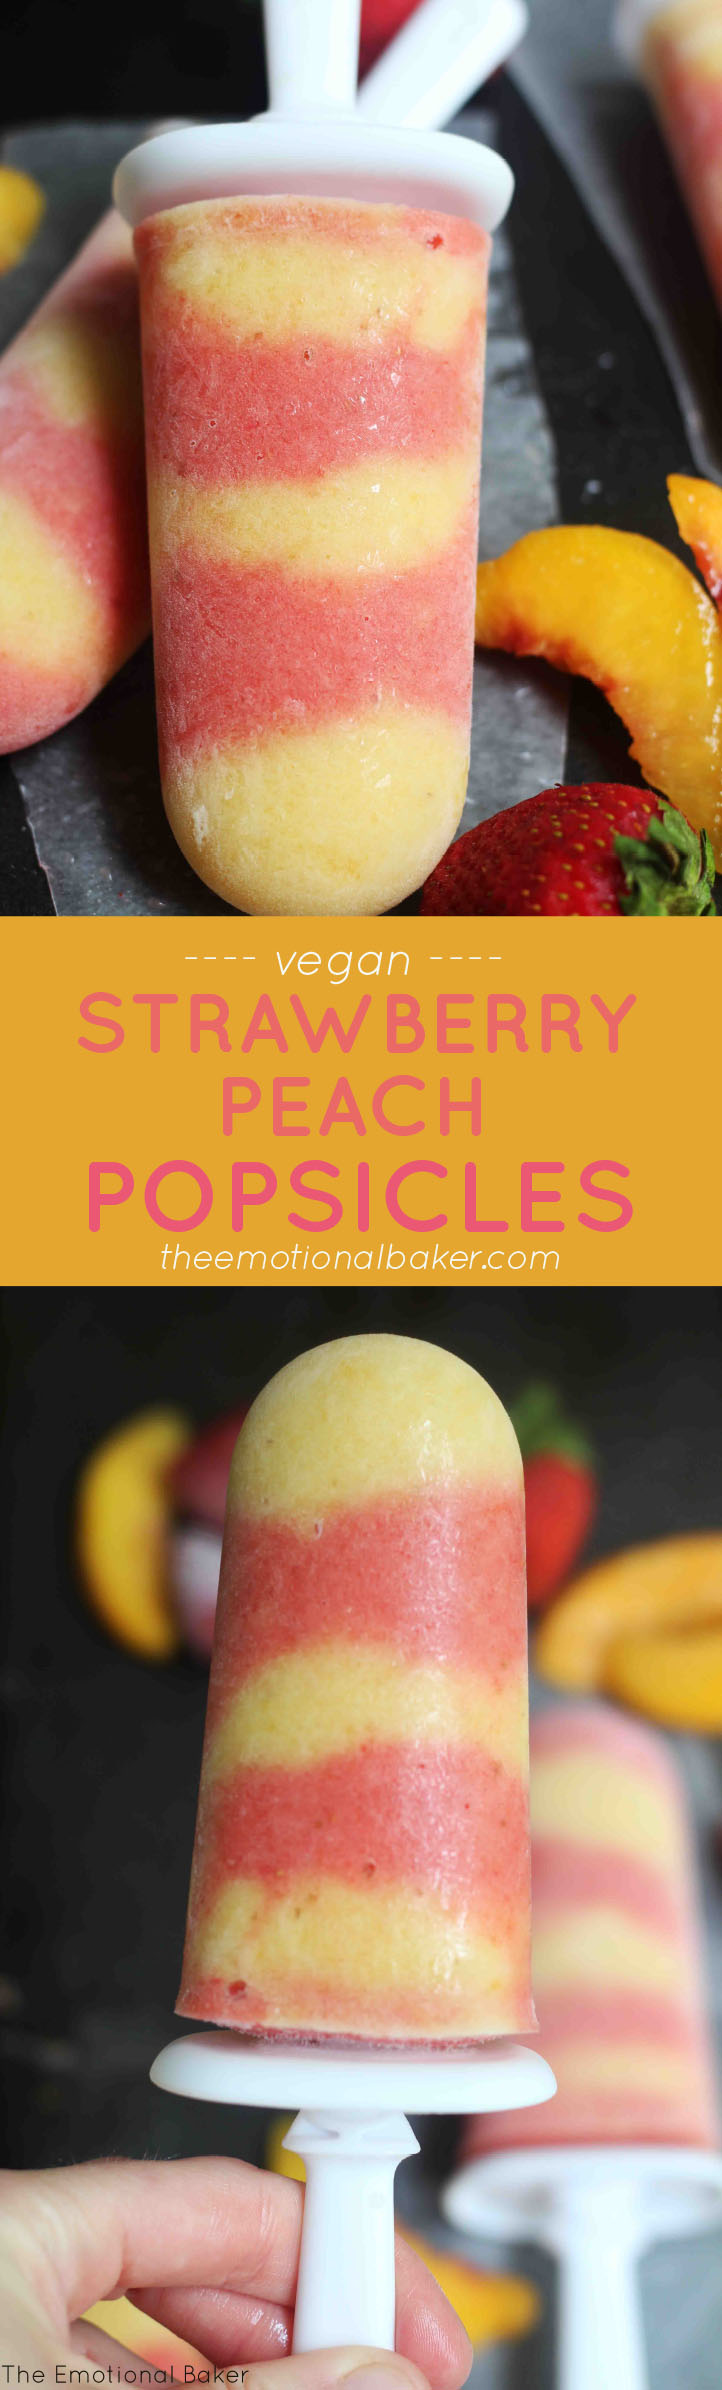 Strawberry Peach Popsicles | The Emotional Baker